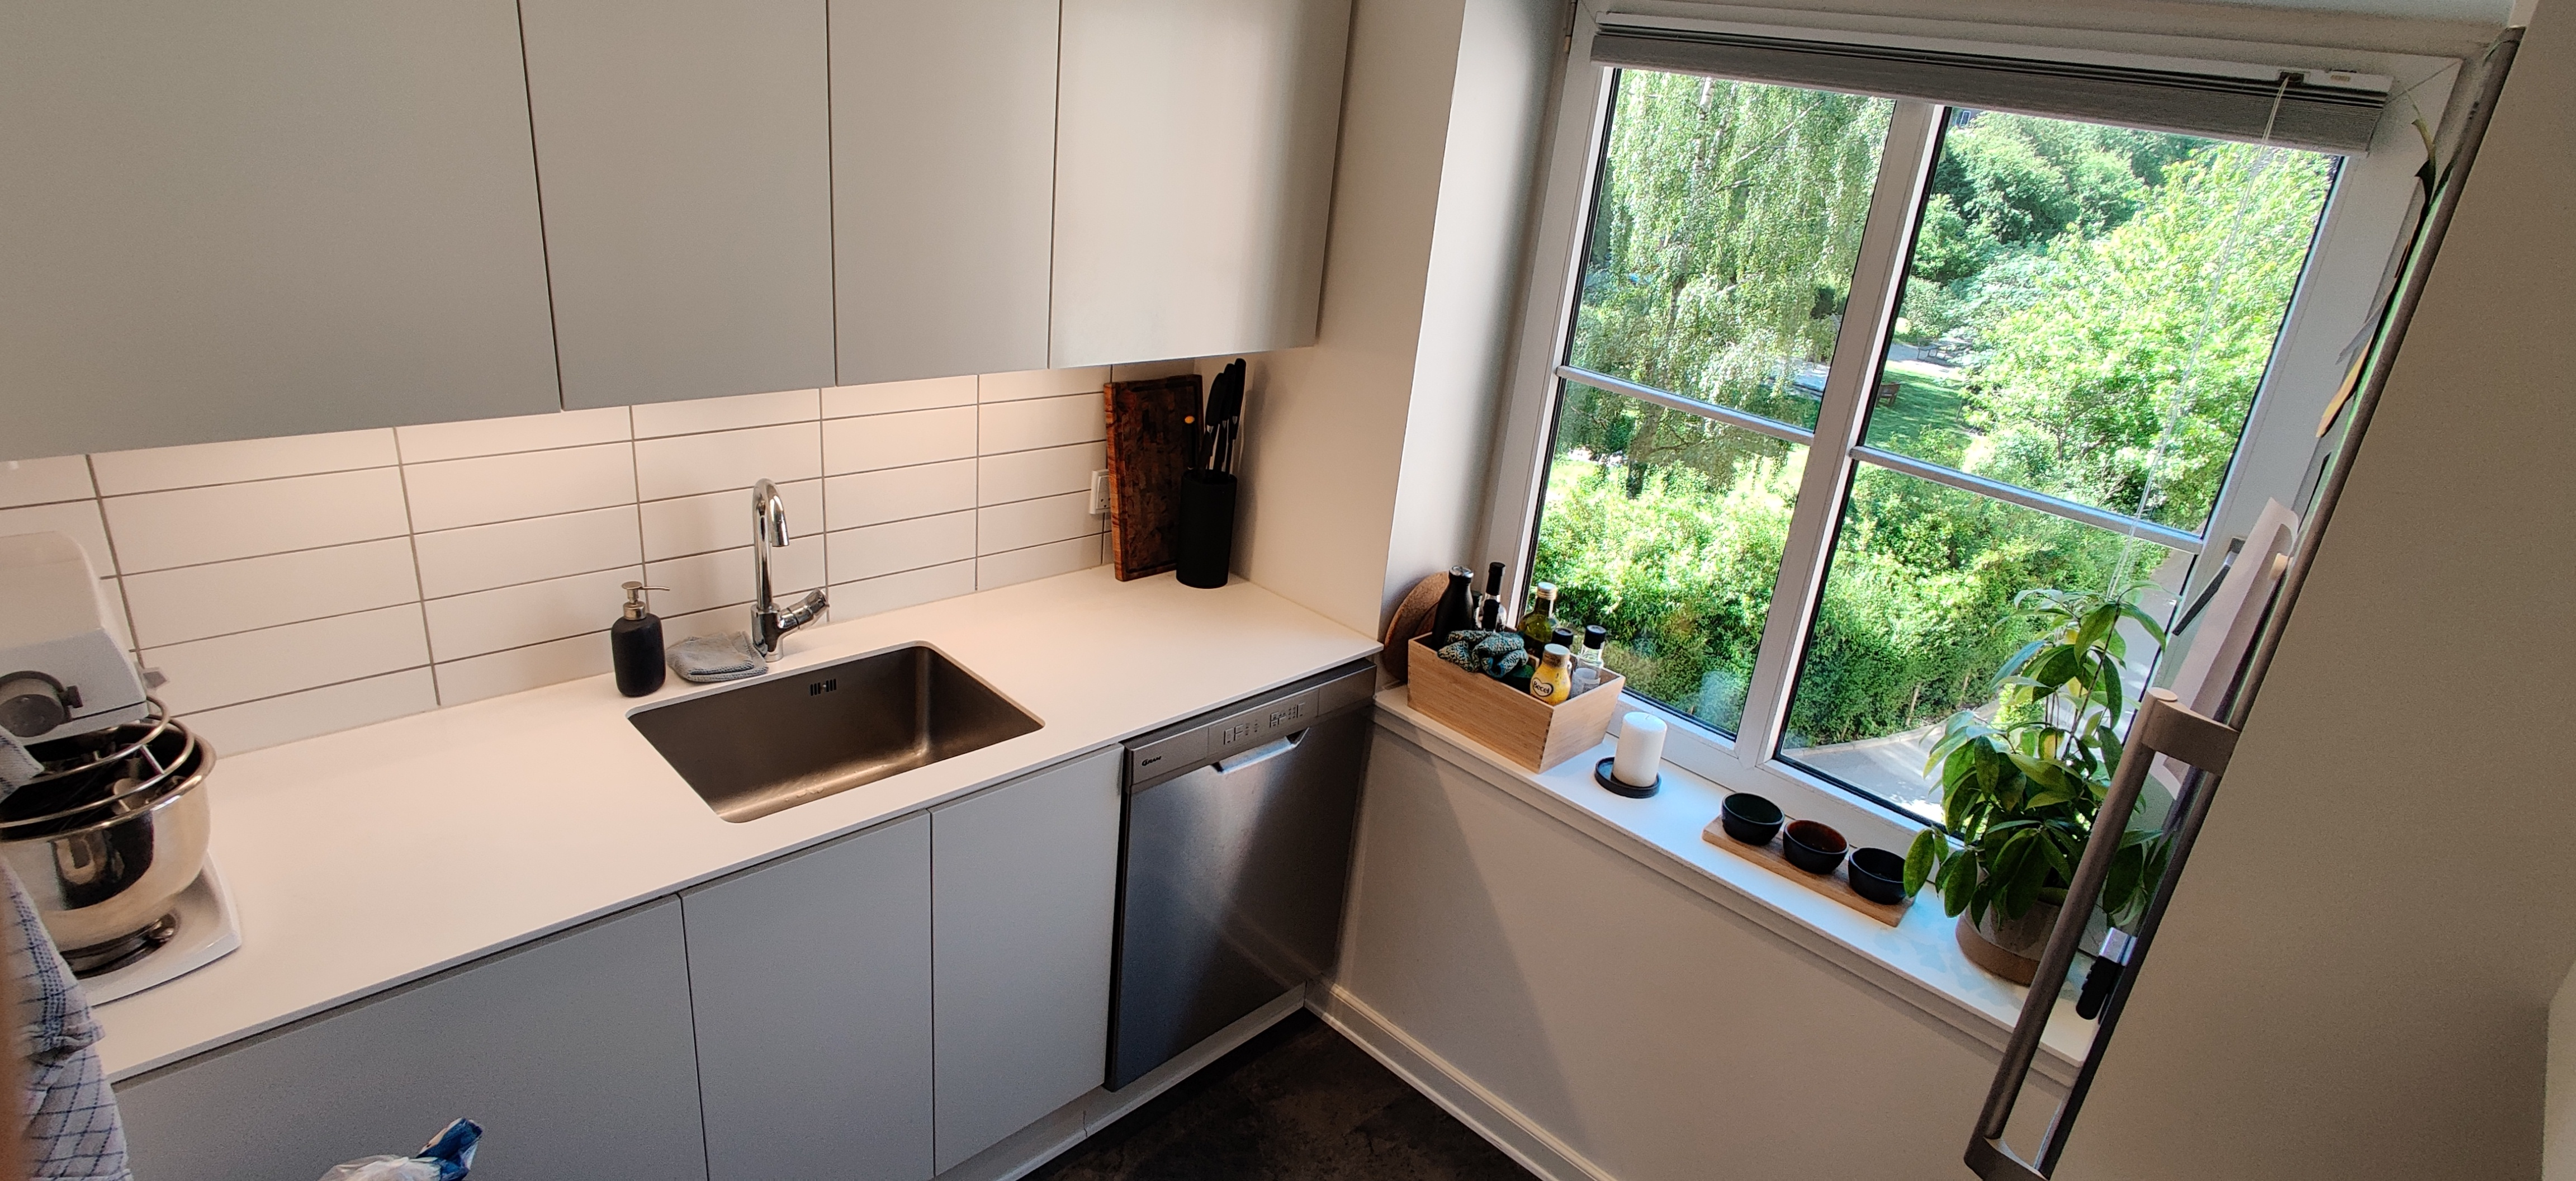 Looking for roommate - 16 sqm room for rent